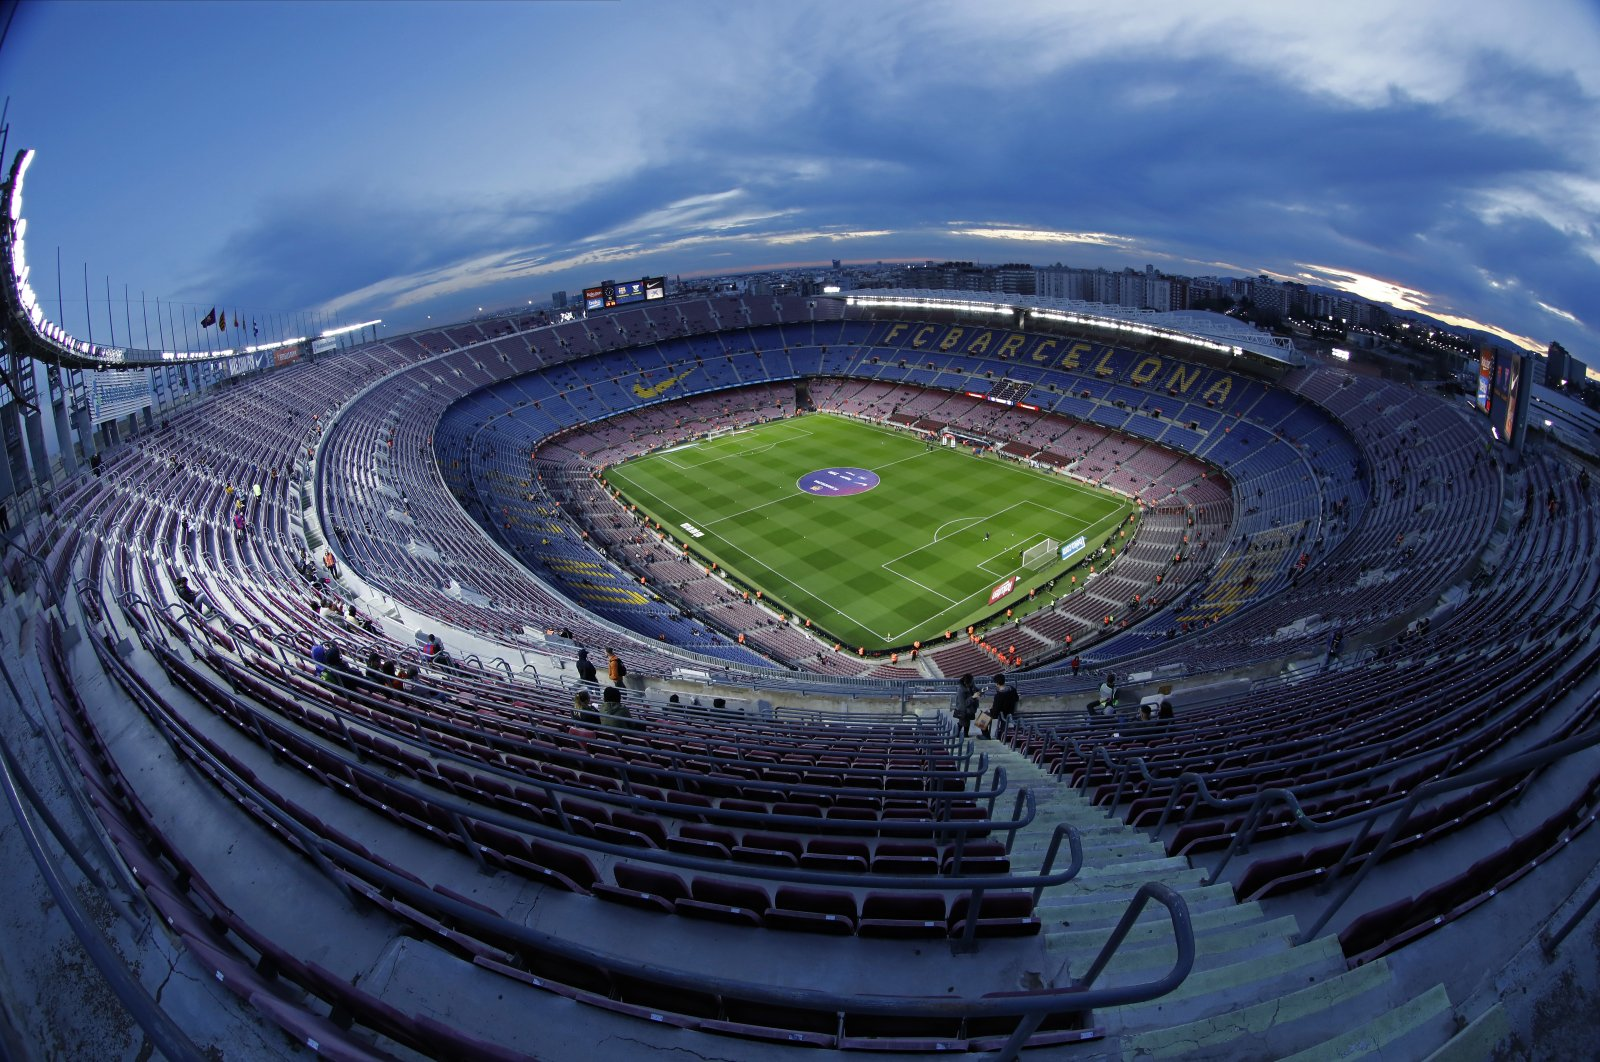 A general view of the Camp Nou stadium prior of a Spanish Copa del Rey football match between Barcelona and Leganes at the Camp Nou stadium in Barcelona, Spain, Jan. 30, 2020. (AP Photo)